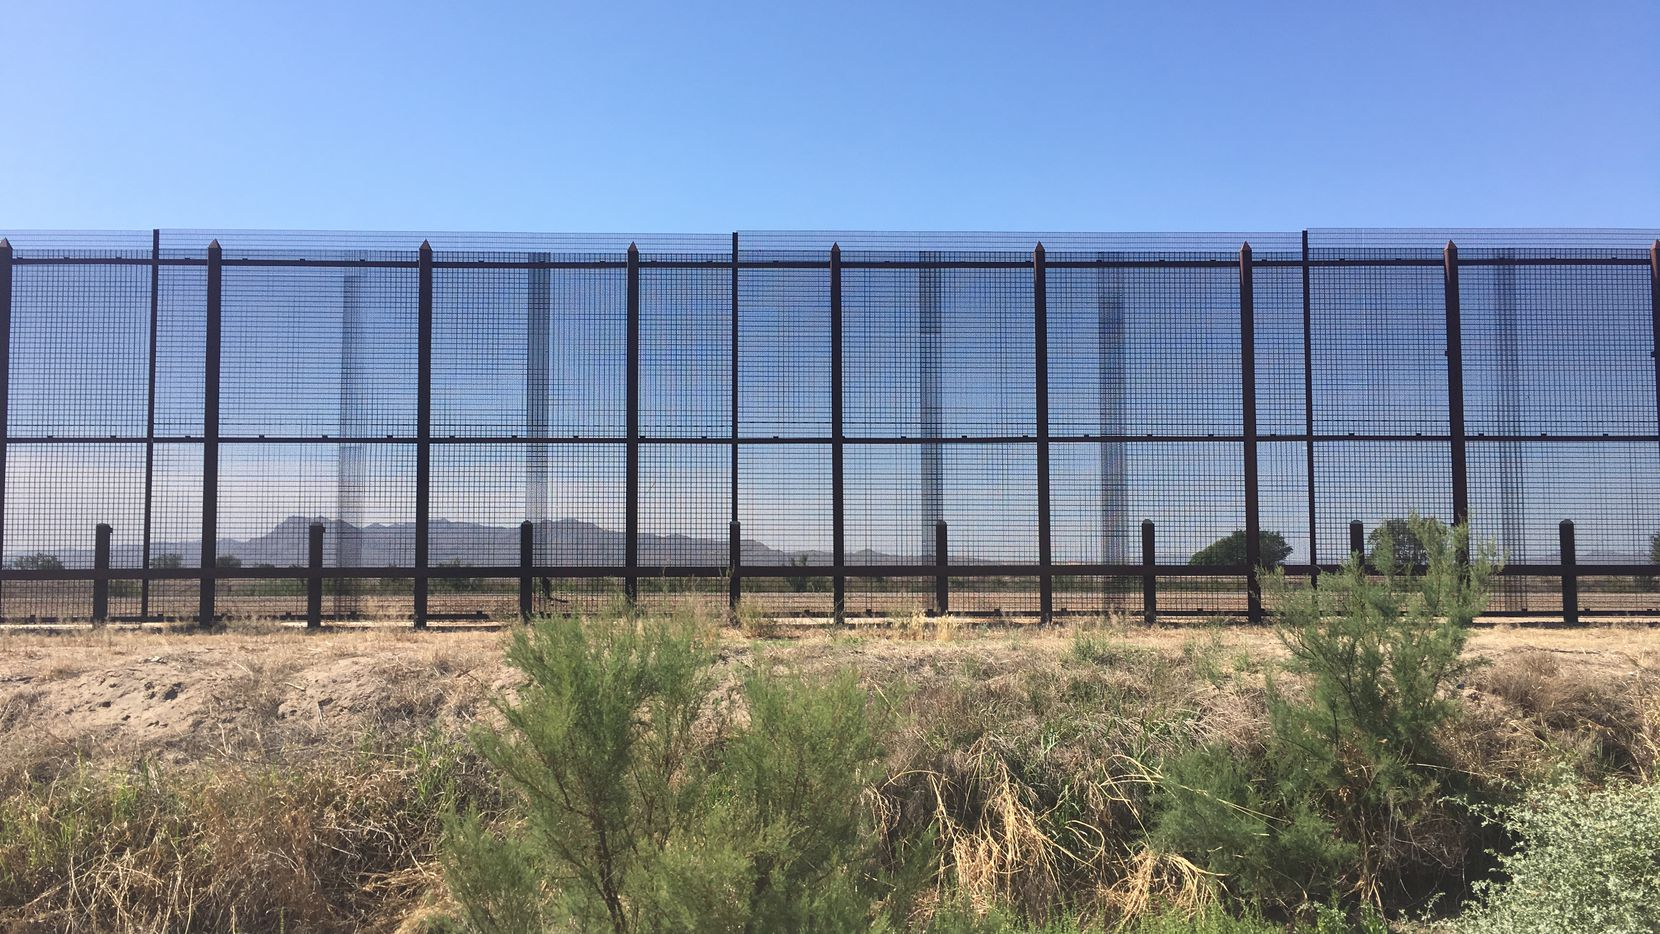 The border fence in Tornillo is on private land owned by a pecan farmer in West Texas. Mountains in Mexico are visible through the 18 foot fence.